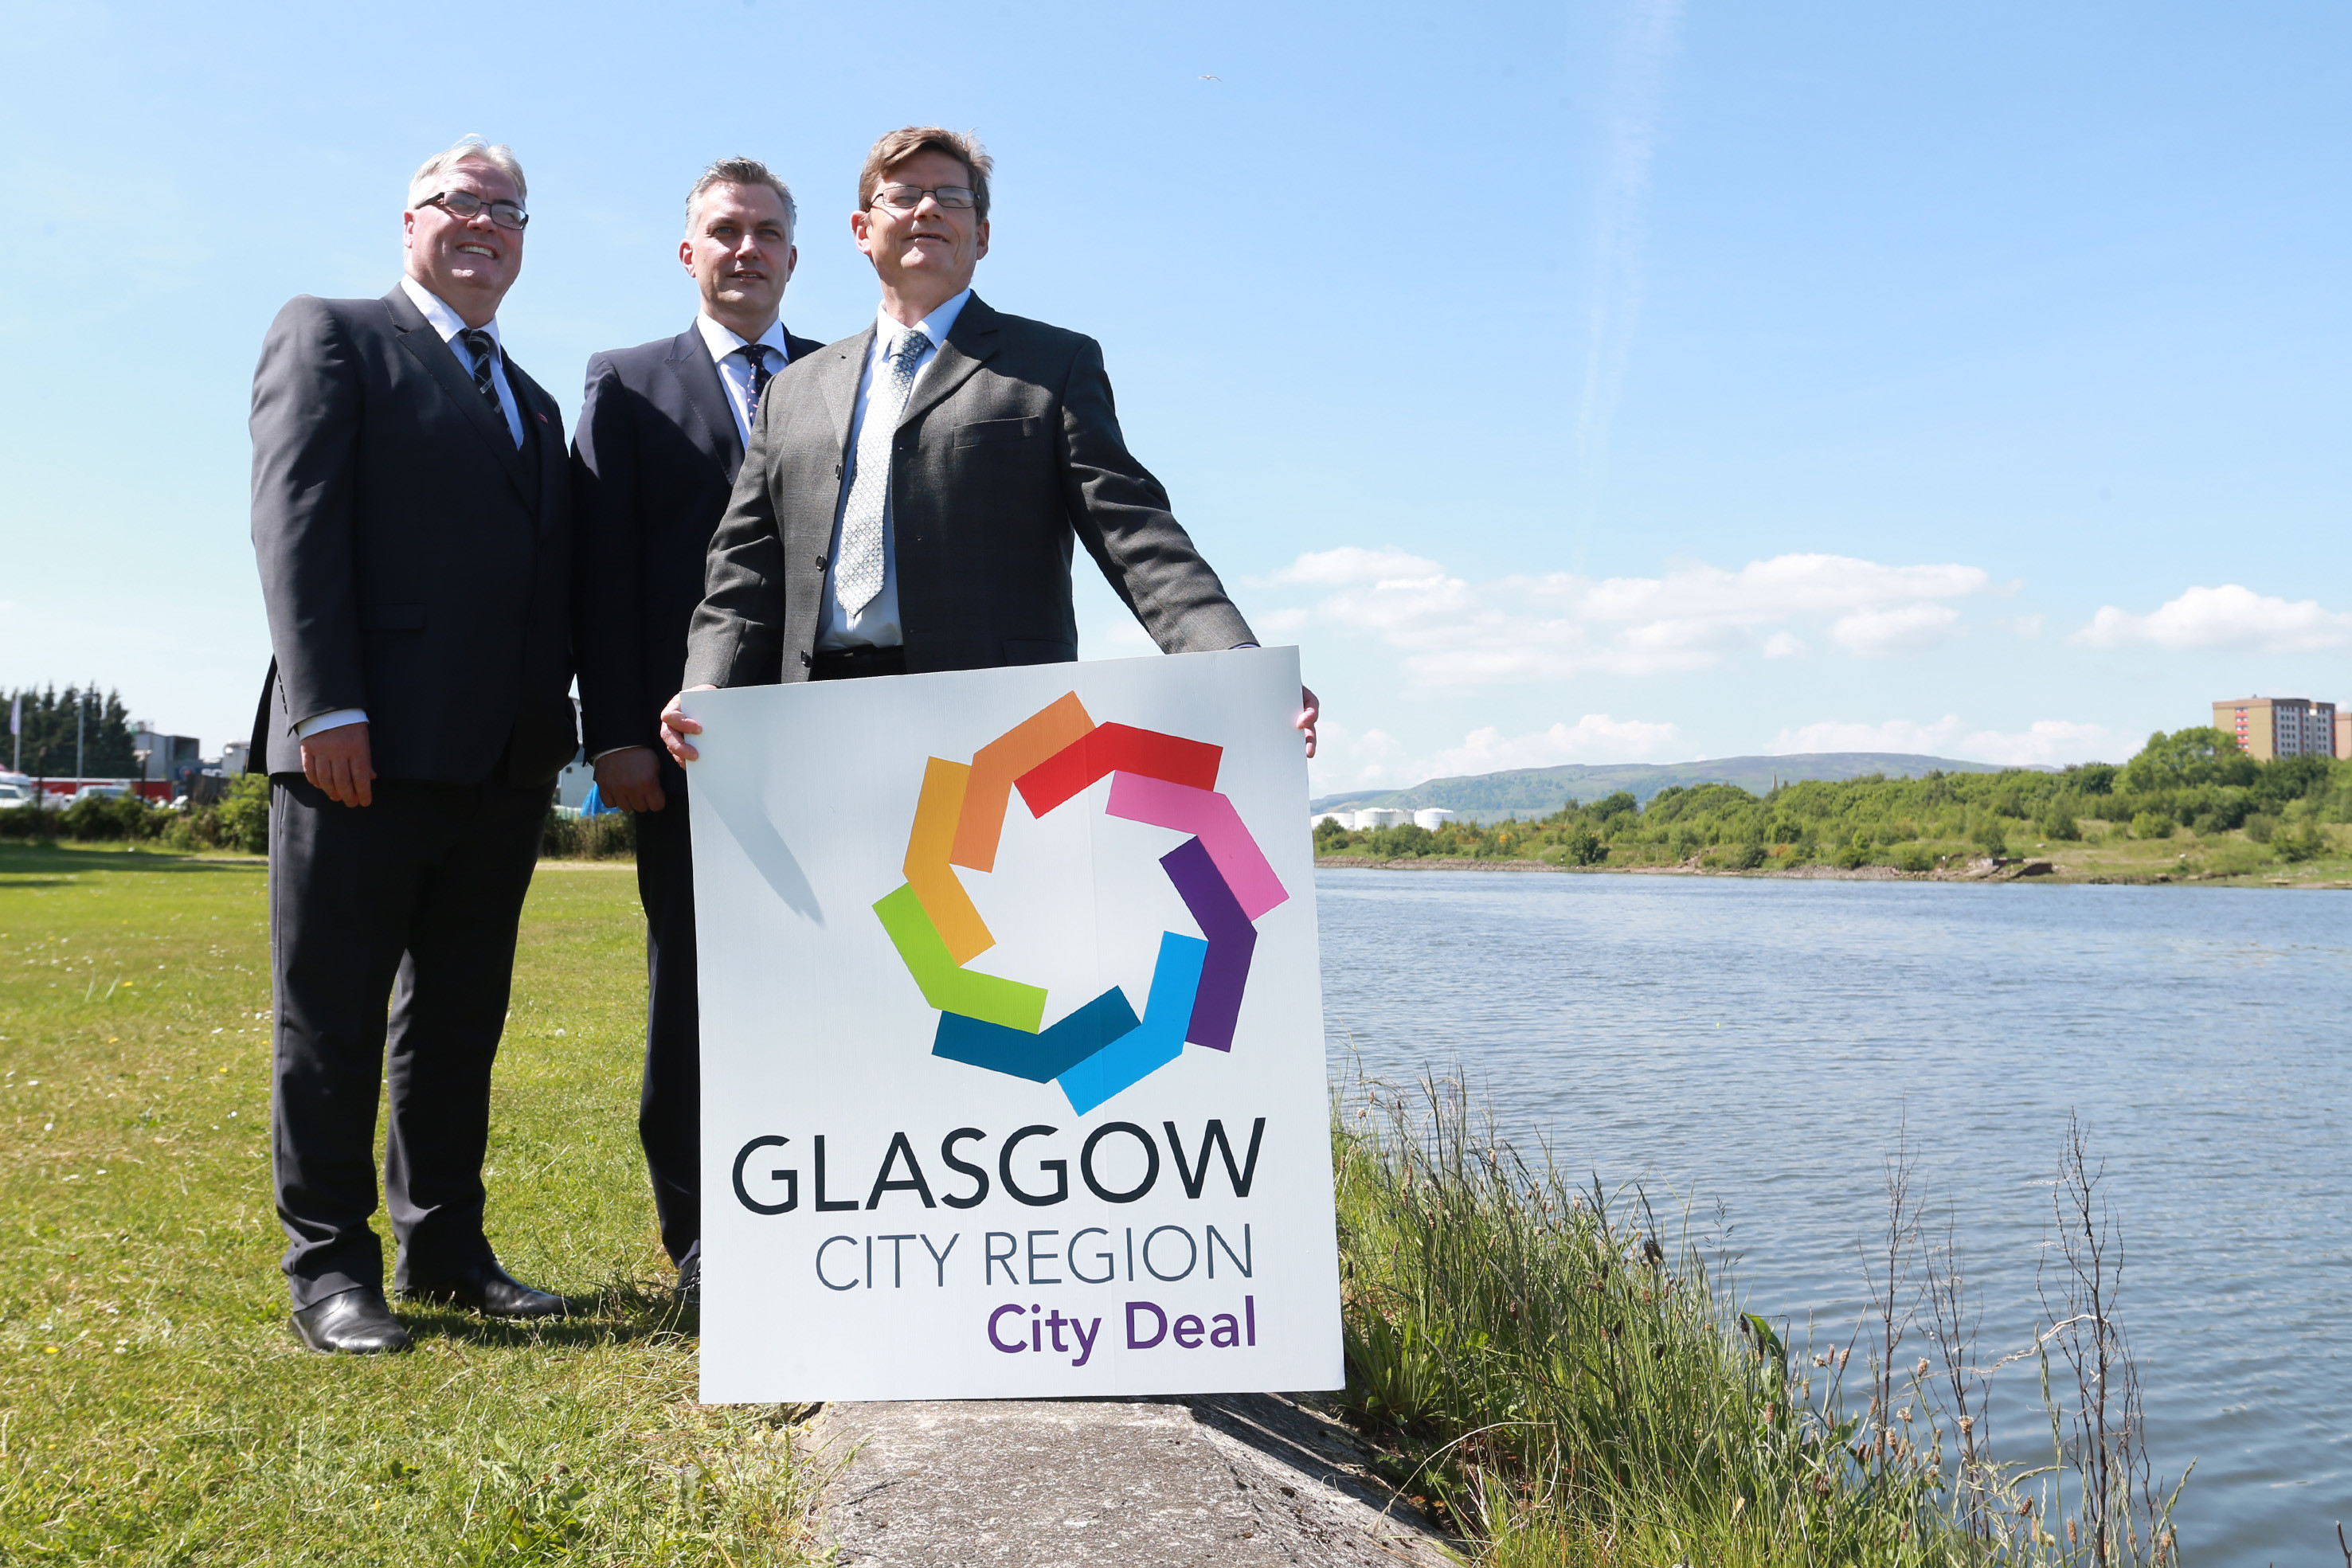 "New City Deal Clyde Bridge-SA001.JPG  FREE FIRST USE Councillor Frank McAveety, Leader of Glasgow City Council , Councillor Martin Rooney, Leader of Dunbartonshire Council and Councillor Mark Macmillan, Leader of Renfrewshire Council  at the banks of the clyde near where the New City Deal Clyde Bridge is to nee located. Council Leaders Back New City Deal Clyde Bridge Three council Leaders have teamed up to look at possible locations for a new bridge across the Clyde.The new bridge will be part of the £78 million Clyde Waterfront and Renfrew Riverside Project and funded by Glasgow City Region City Deal.  The Leaders of West Dunbartonshire, Glasgow City and Renfrewshire Councils believe that it will bring 'significant investment, jobs and transport benefits to communities on both sides of the river and throughout the City Region.'This will be an exciting addition to the Clyde and its only opening road bridge. It will also be the only road crossing between the Clyde Tunnel and the Erskine Bridge. Councillor Martin Rooney, Leader of Dunbartonshire Council said, ""This landmark bridge will put our communities right at the heart of the regional economy.  It will have a positive impact on local life and help to create a thriving future where businesses can grow and residents can take advantage of new connections to employment, leisure and educational opportunities.""The project will increase the potential for business growth by improving their connections with customers and suppliers.  It will also enhance access to land which is currently underused or derelict; unlocking the potential for regeneration and new developments in the Yoker, Clydebank and Renfrew areas.The Glasgow City Region City Deal is investing £1.1 billion on infrastructure. £300 million of this will be spent on projects in Dunbartonshire and Renfrewshire: the £28m Exxon site development at Bowling, the Glasgow Airport Investment Area, and the new rail connection between Glasgow Central, Paisl"